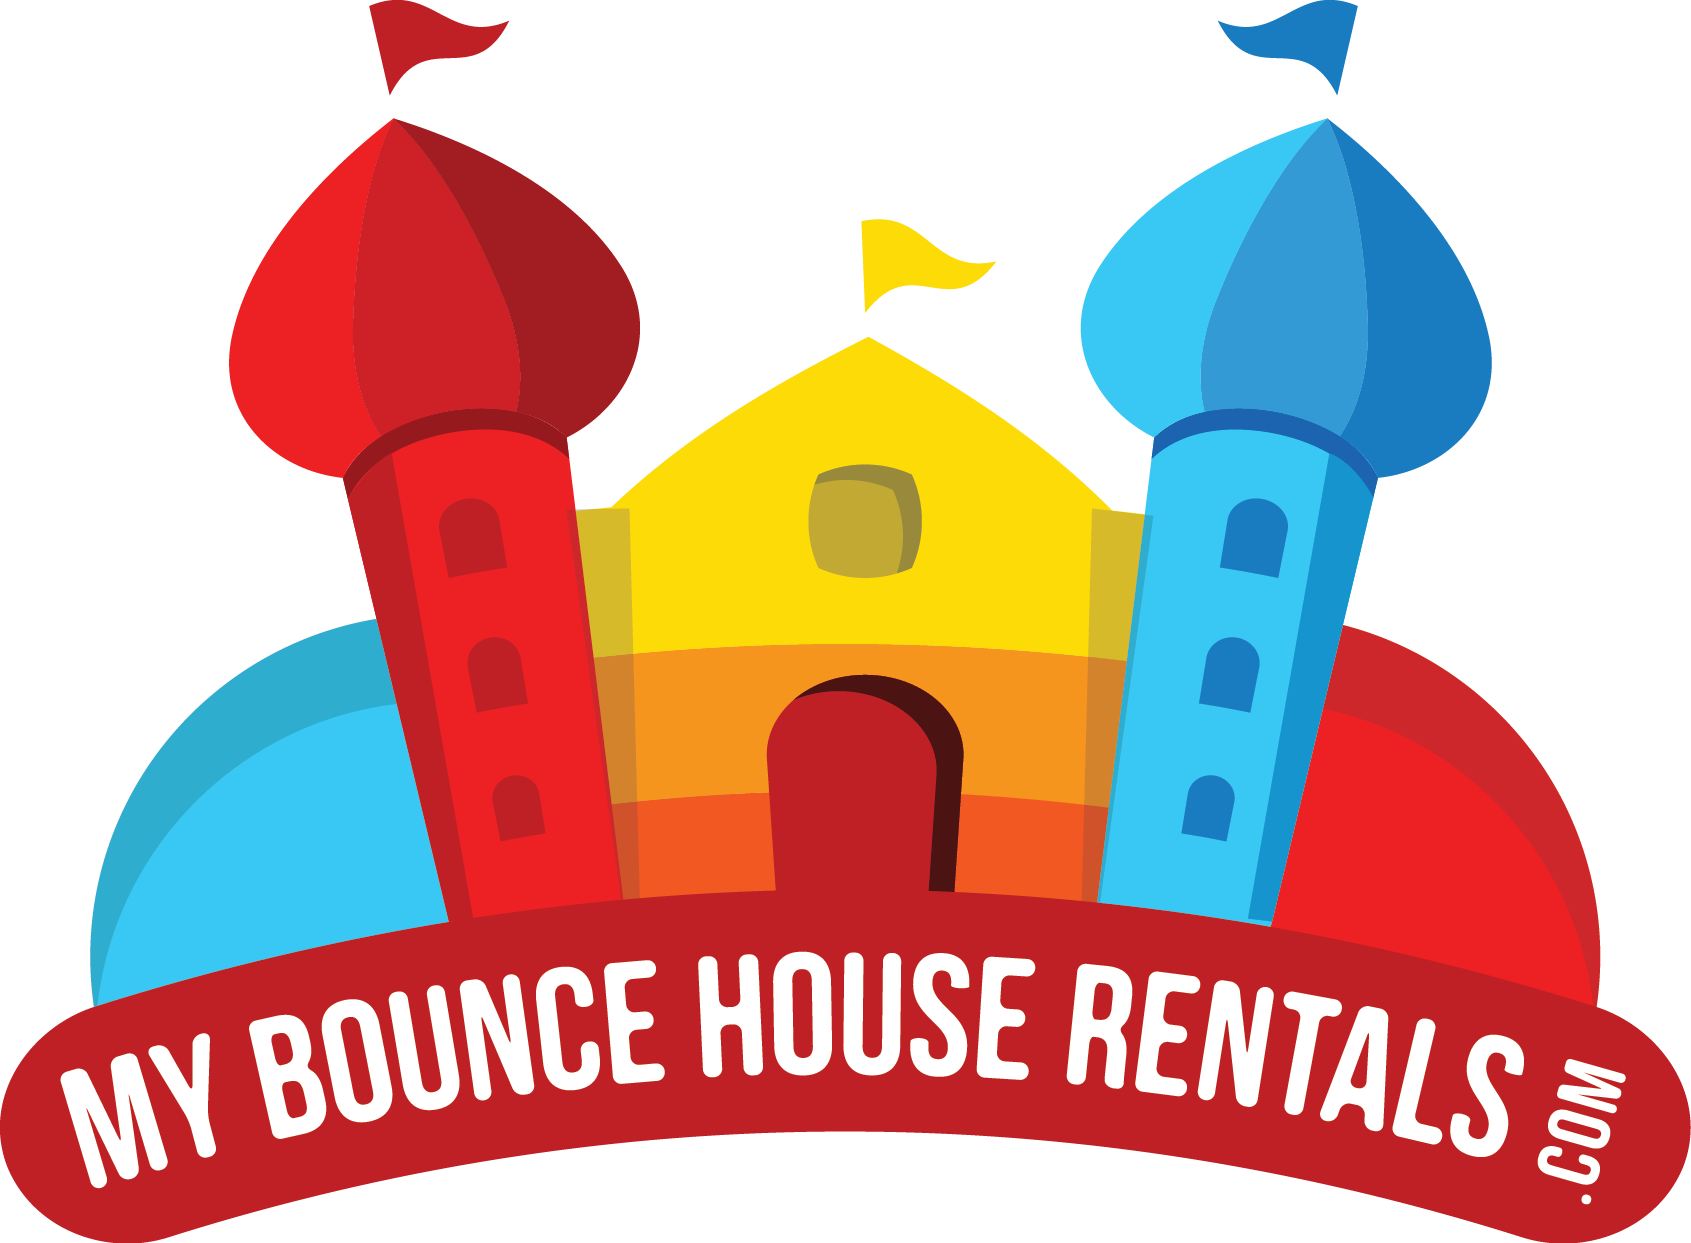 My bounce house rentals of Overland Park's Logo